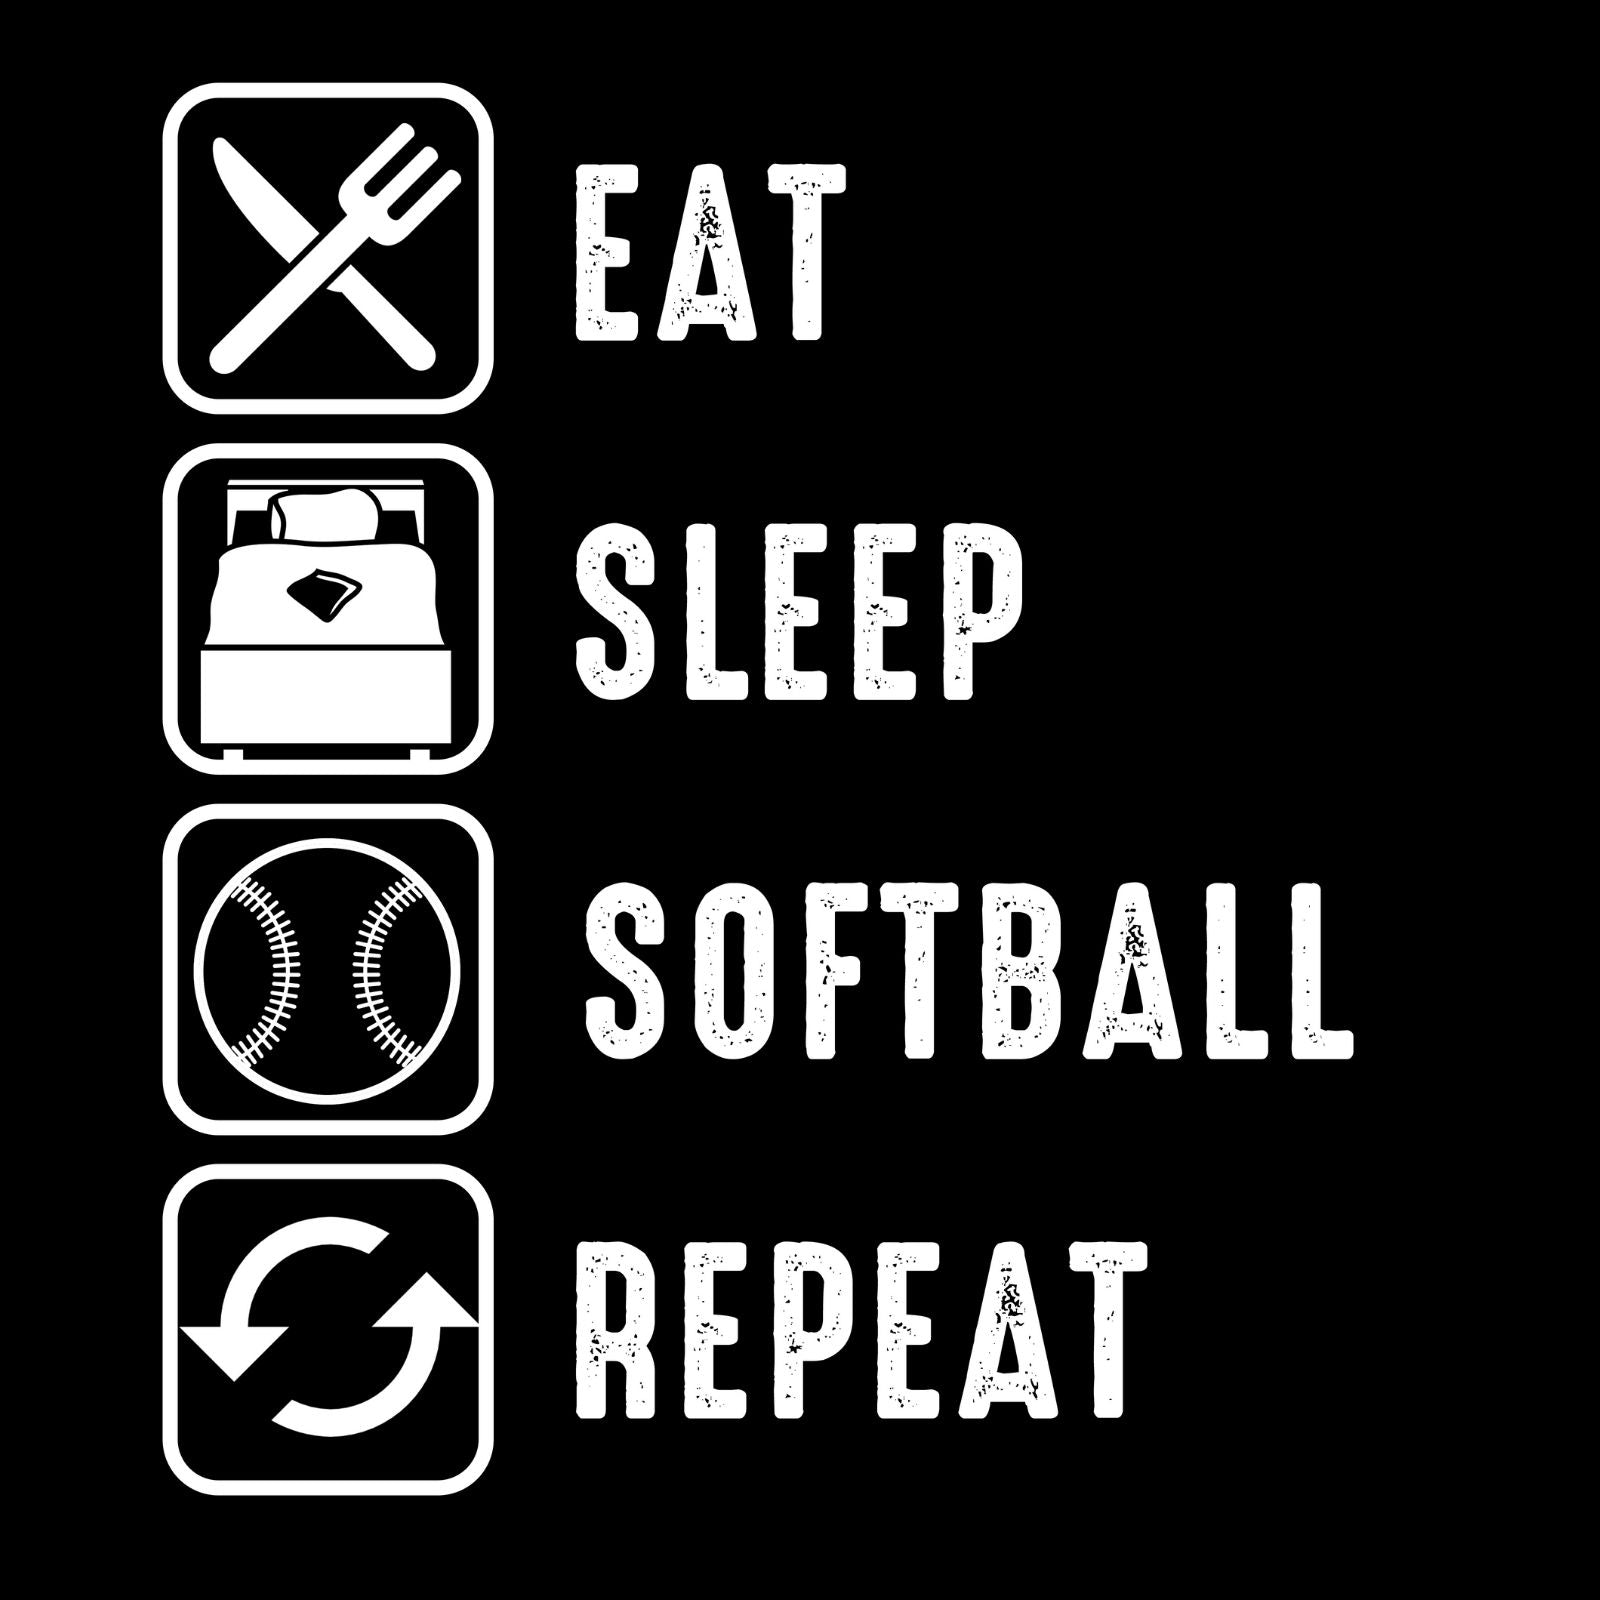 Eat Sleep Softball Repeat - Bastard Graphics